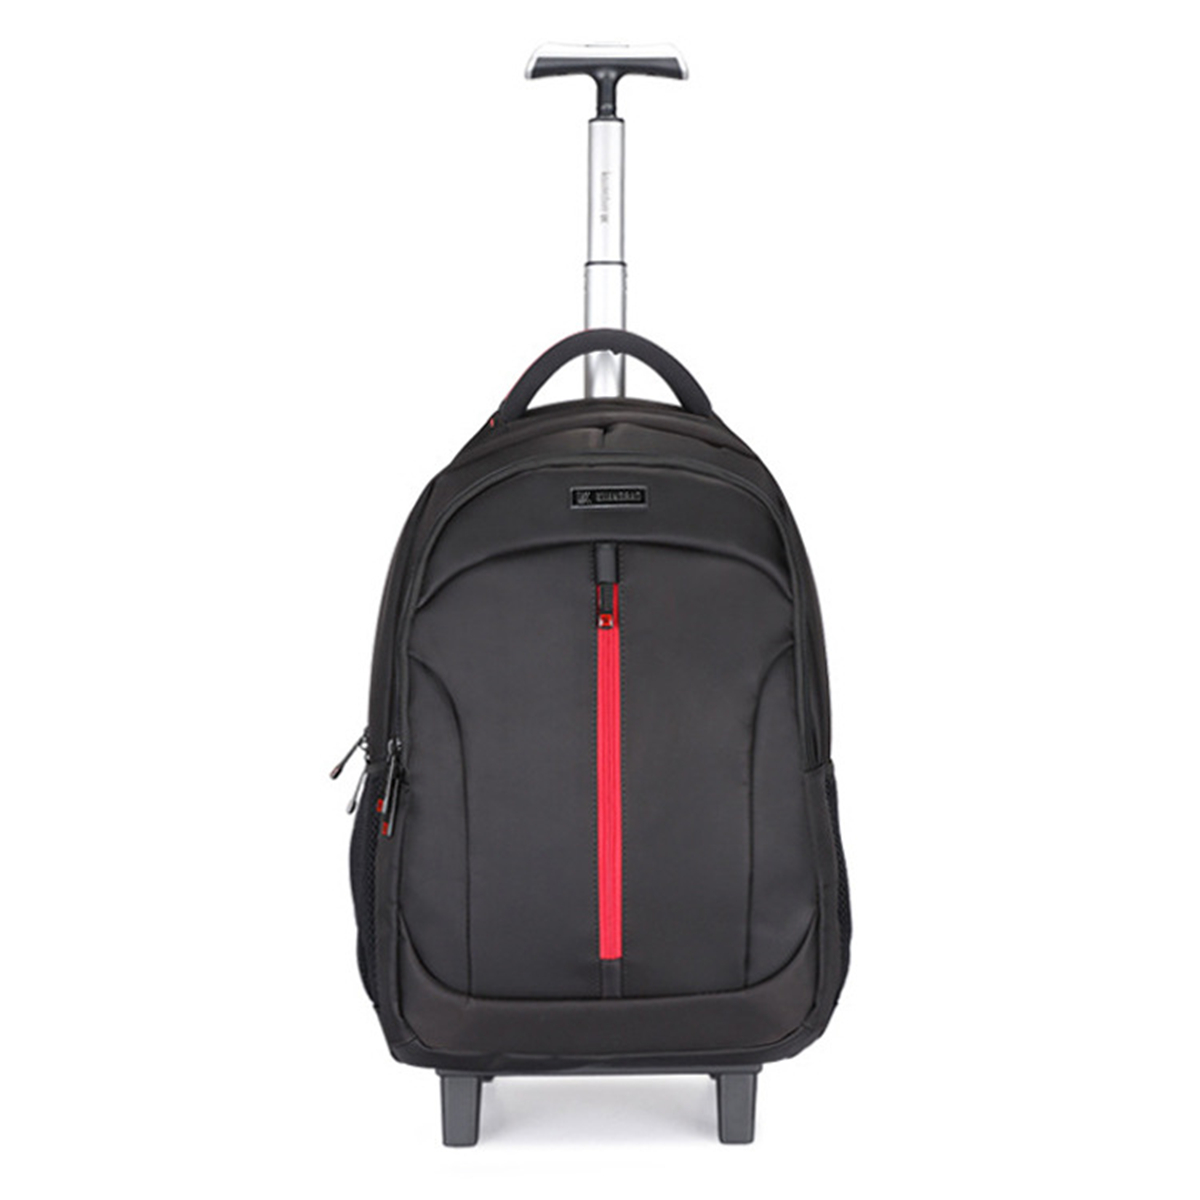 Men Waterproof Travel Trolley Luggage Bags Travel Trolley Rolling Bags Women Wheeled Backpacks Business Luggage Suitcase 19inch